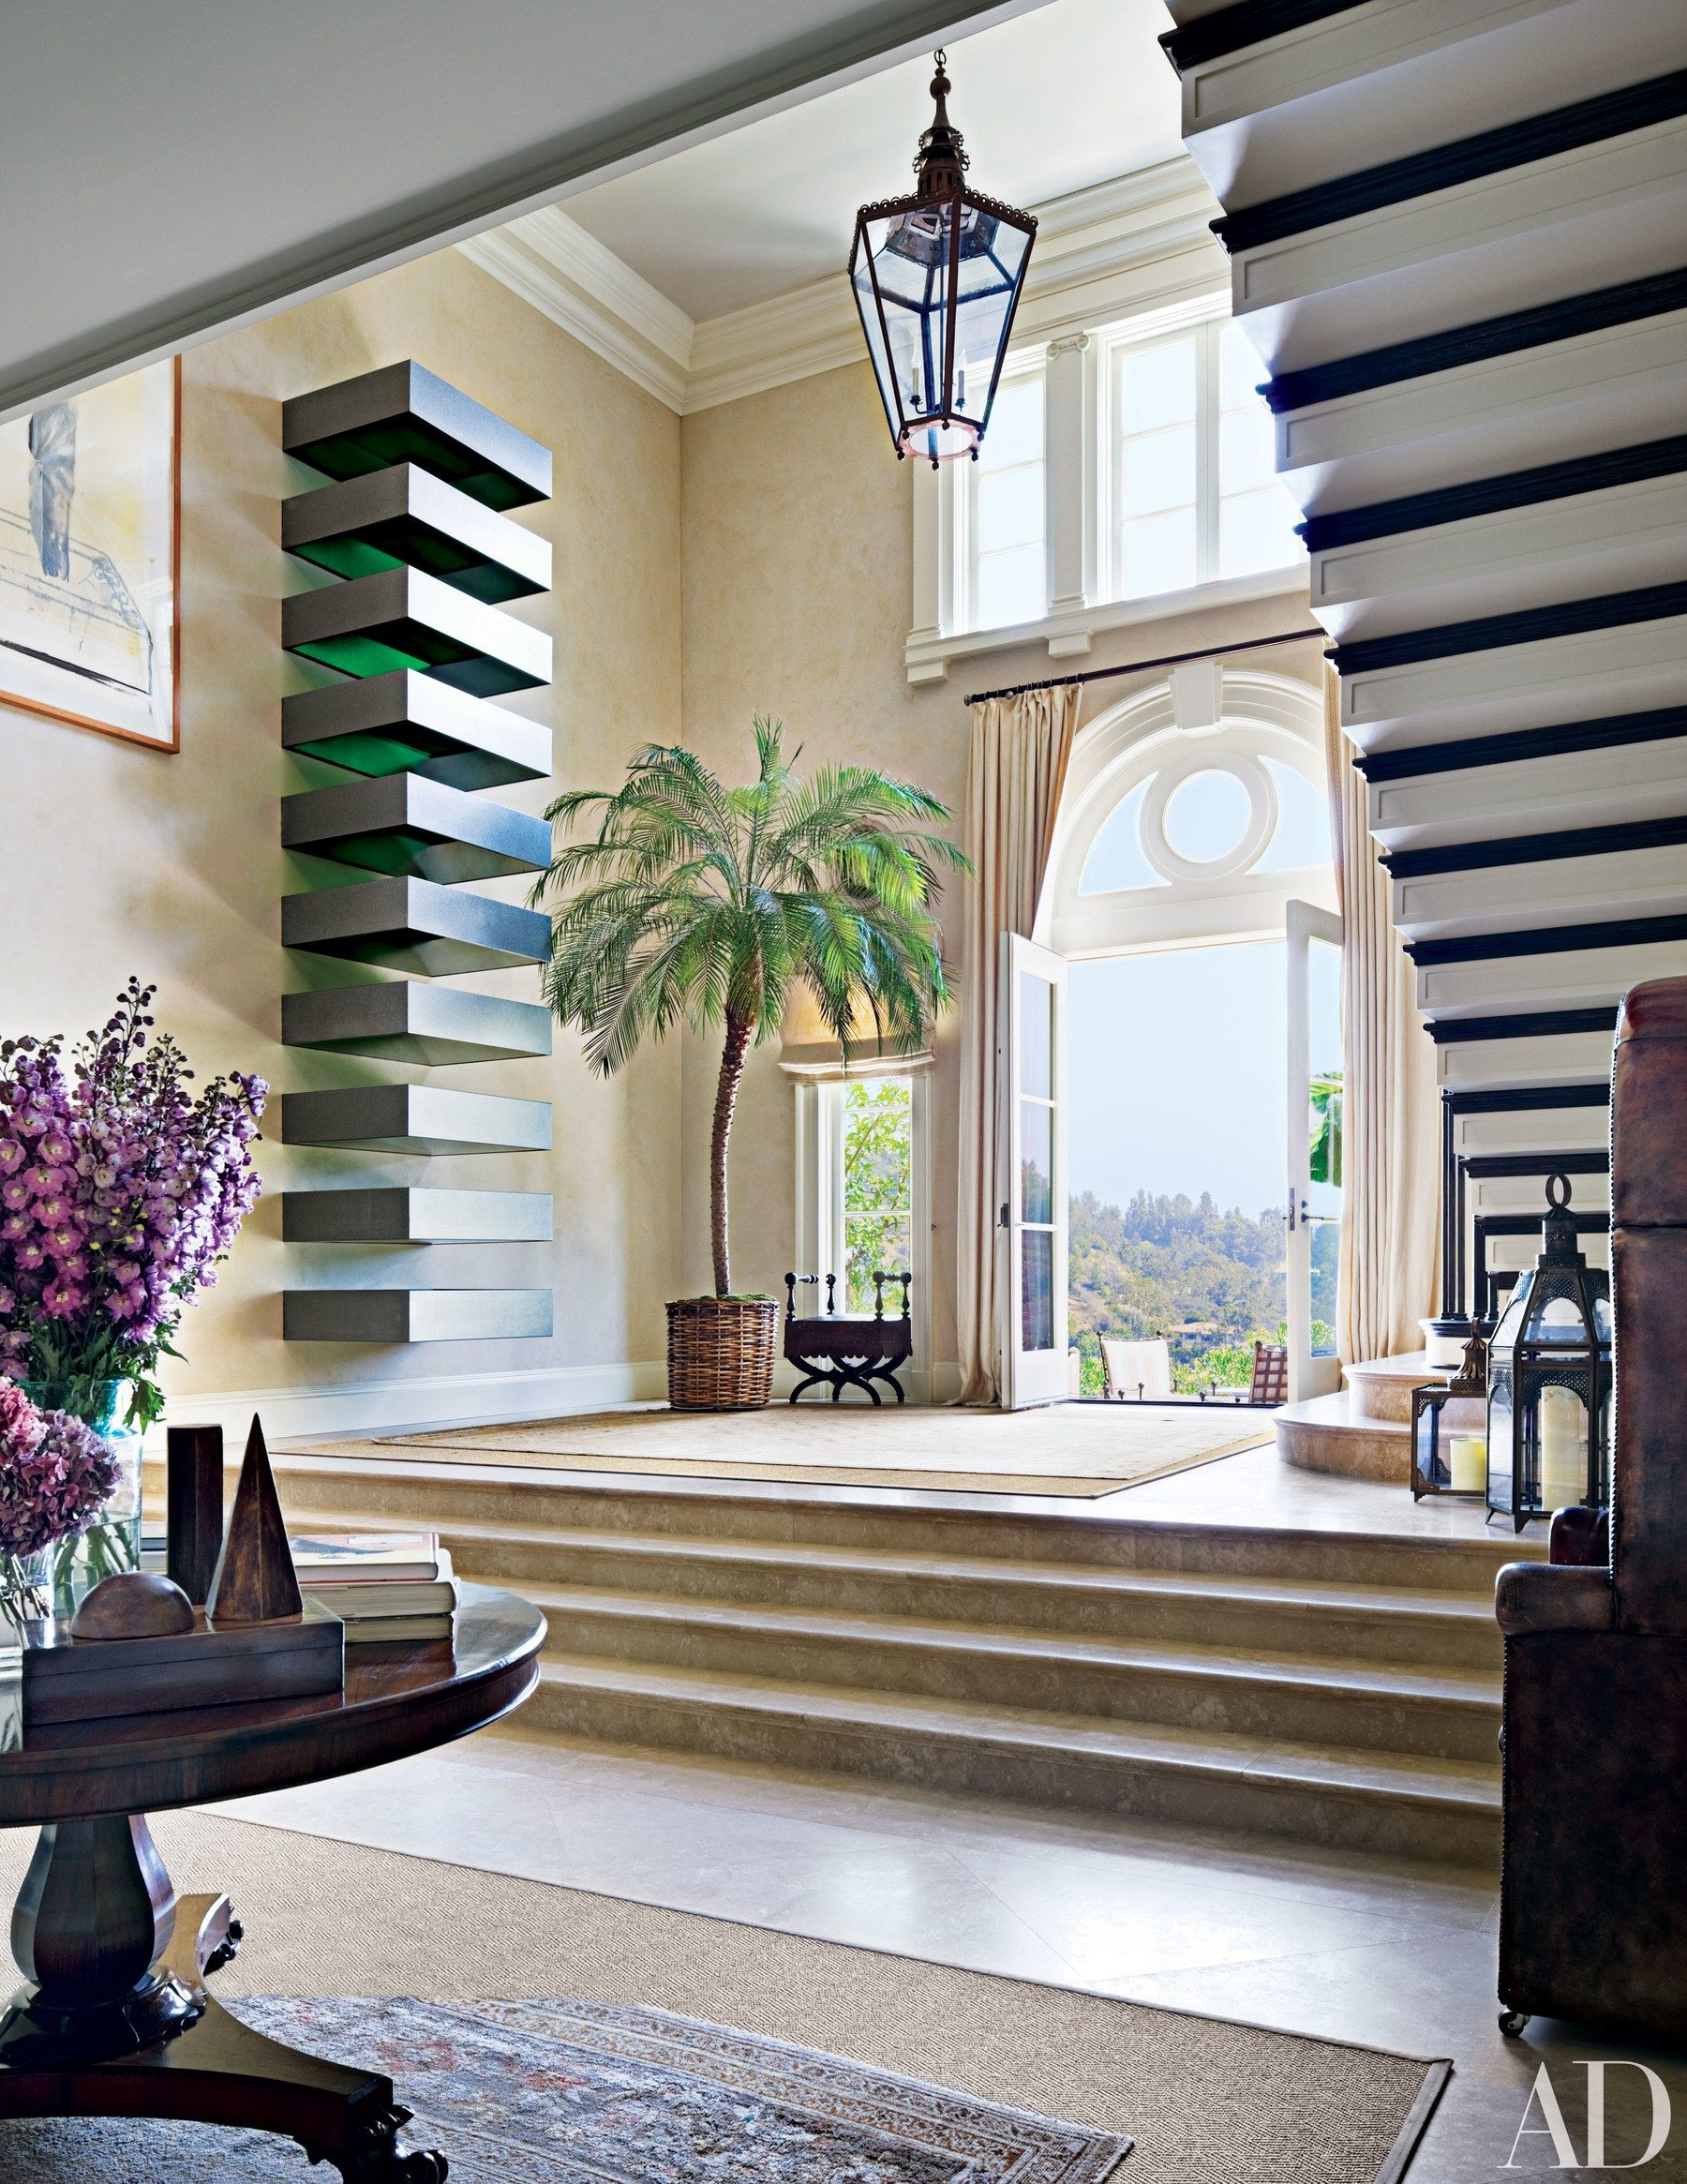 In the entrance hall of a Los Angeles home renovated by architect